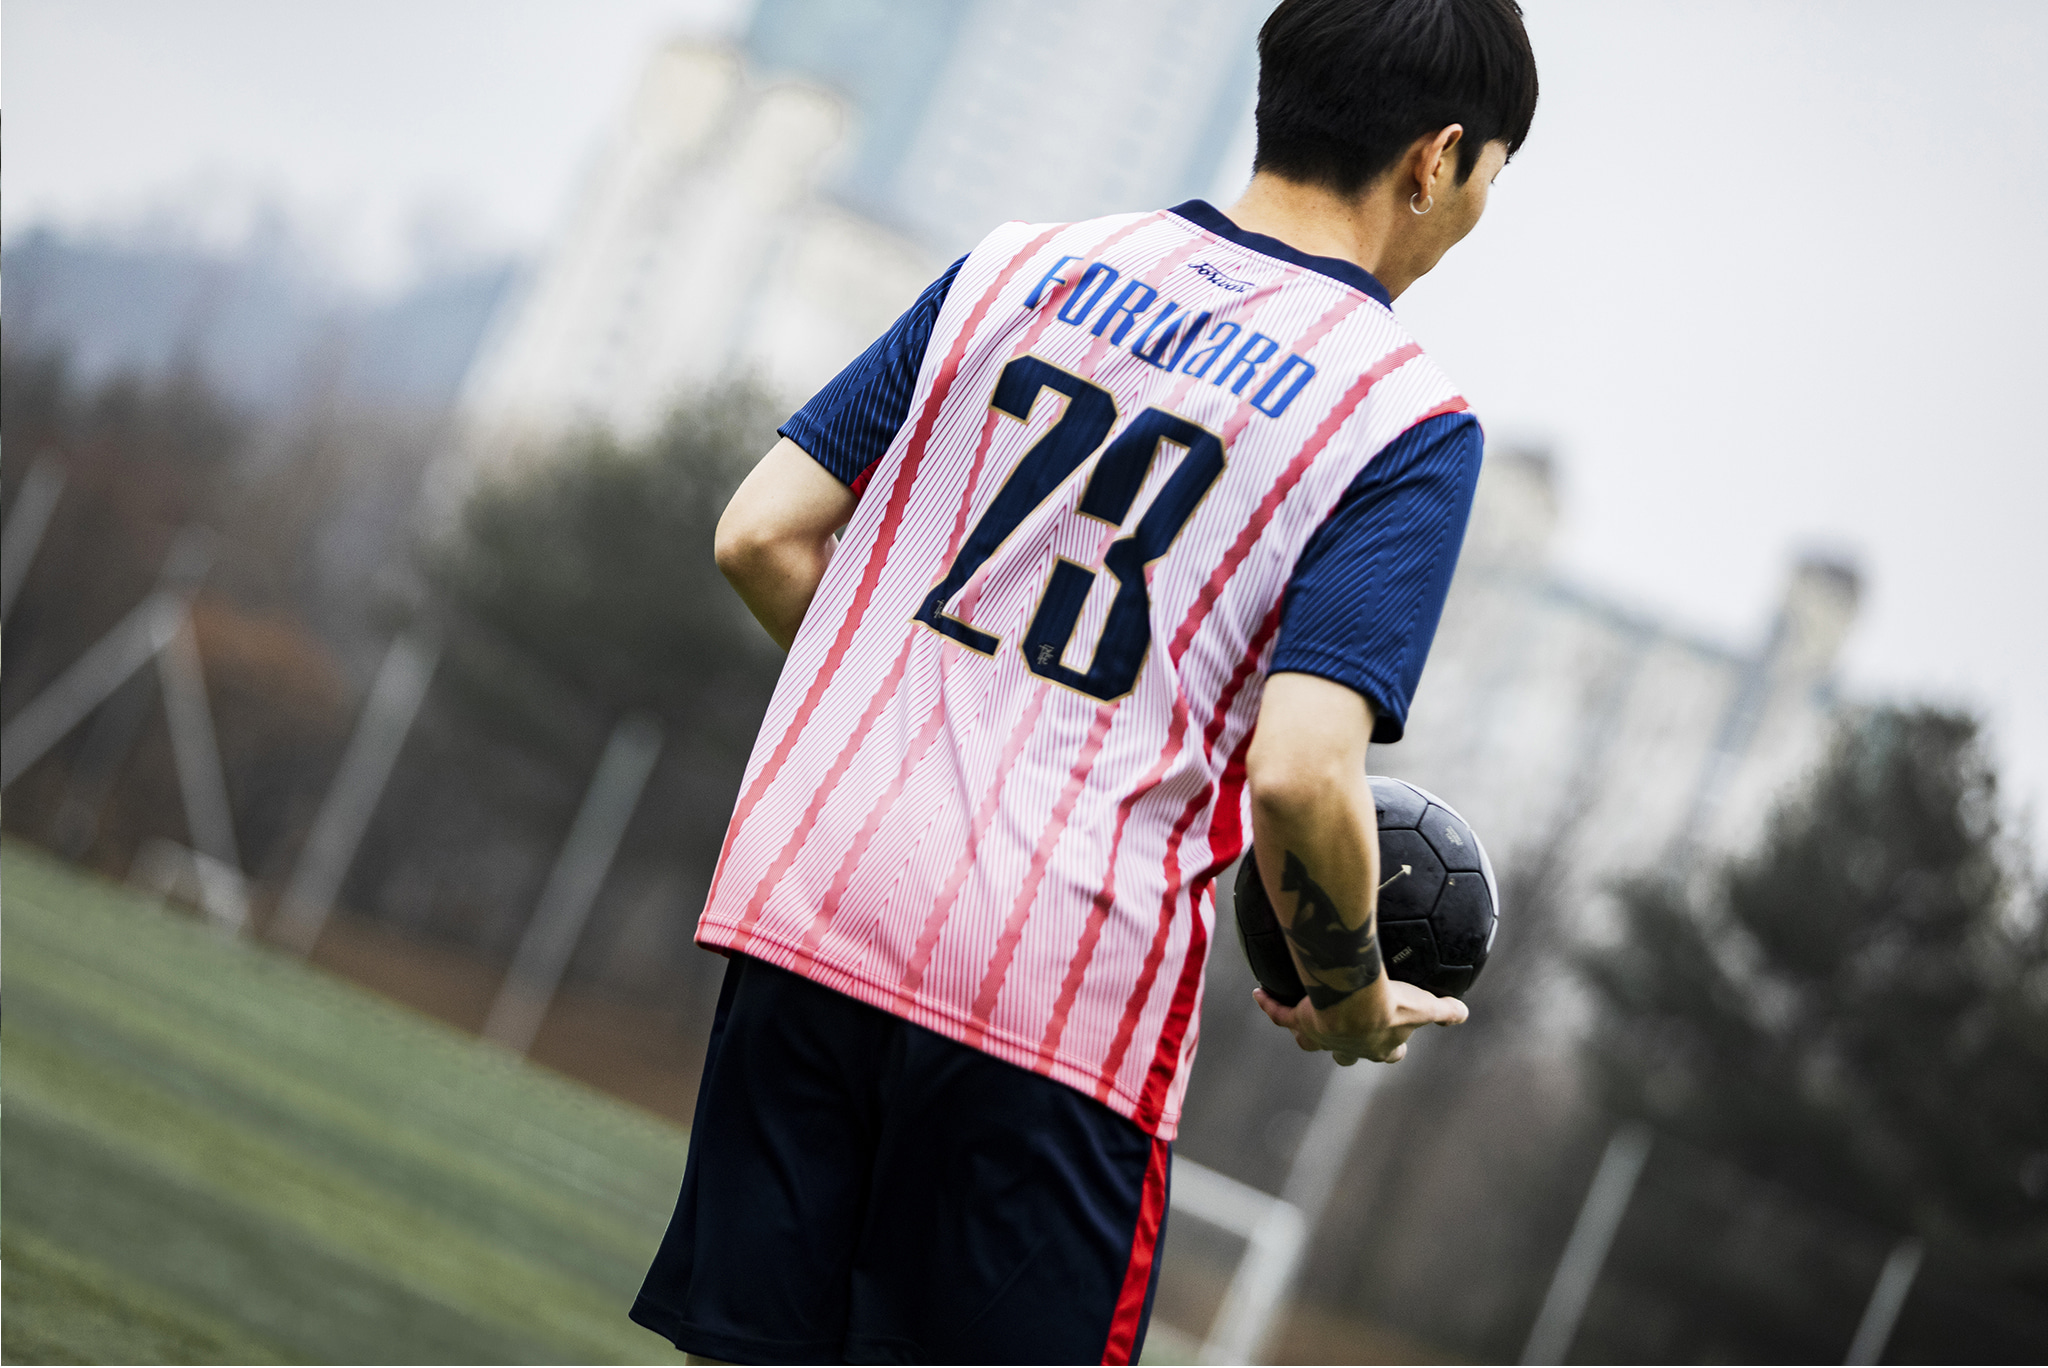 FORWARD FOOTBALL EVERYWEAR 19SS - CHALLENGER